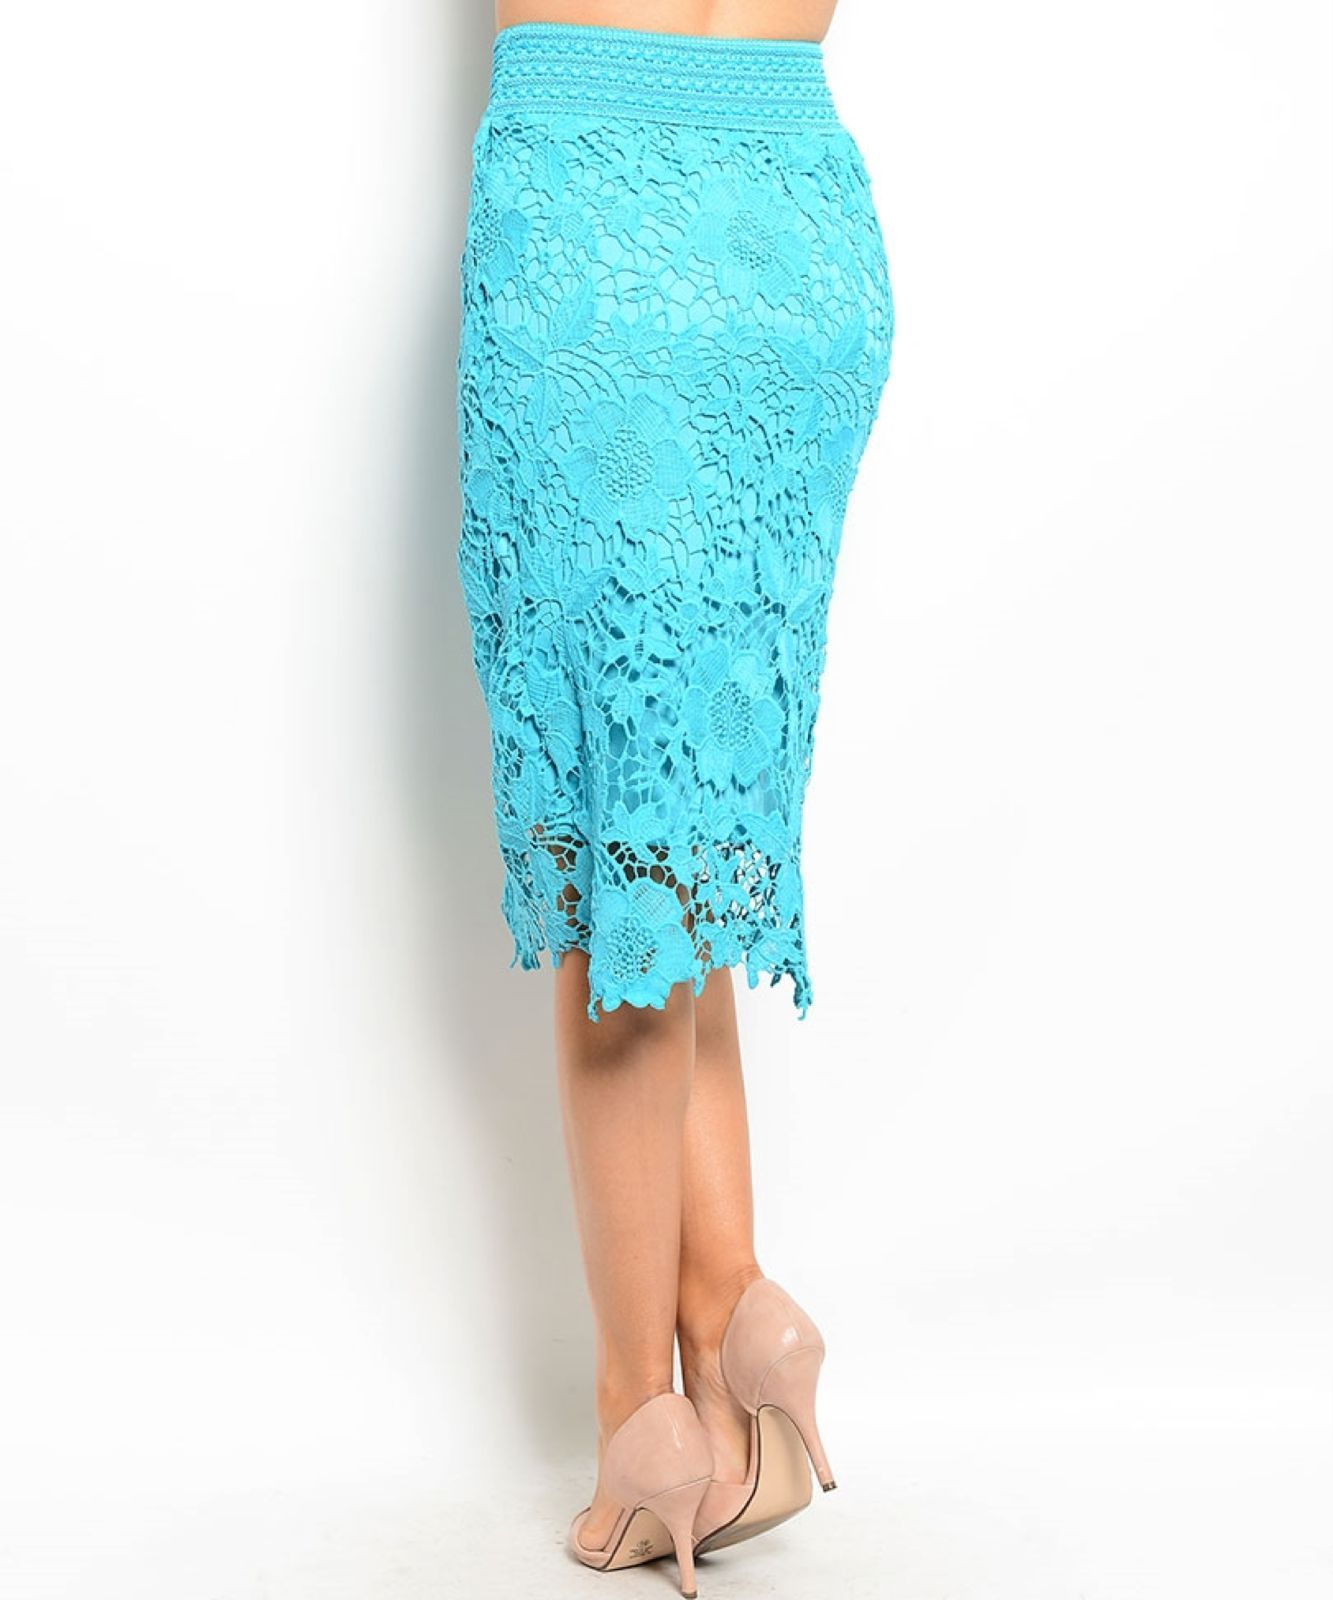 Image 3 of Chic Crochet Lace Lined Jr Skirt, Cocktail Club Wedding Party, Fuchsia or Aqua -